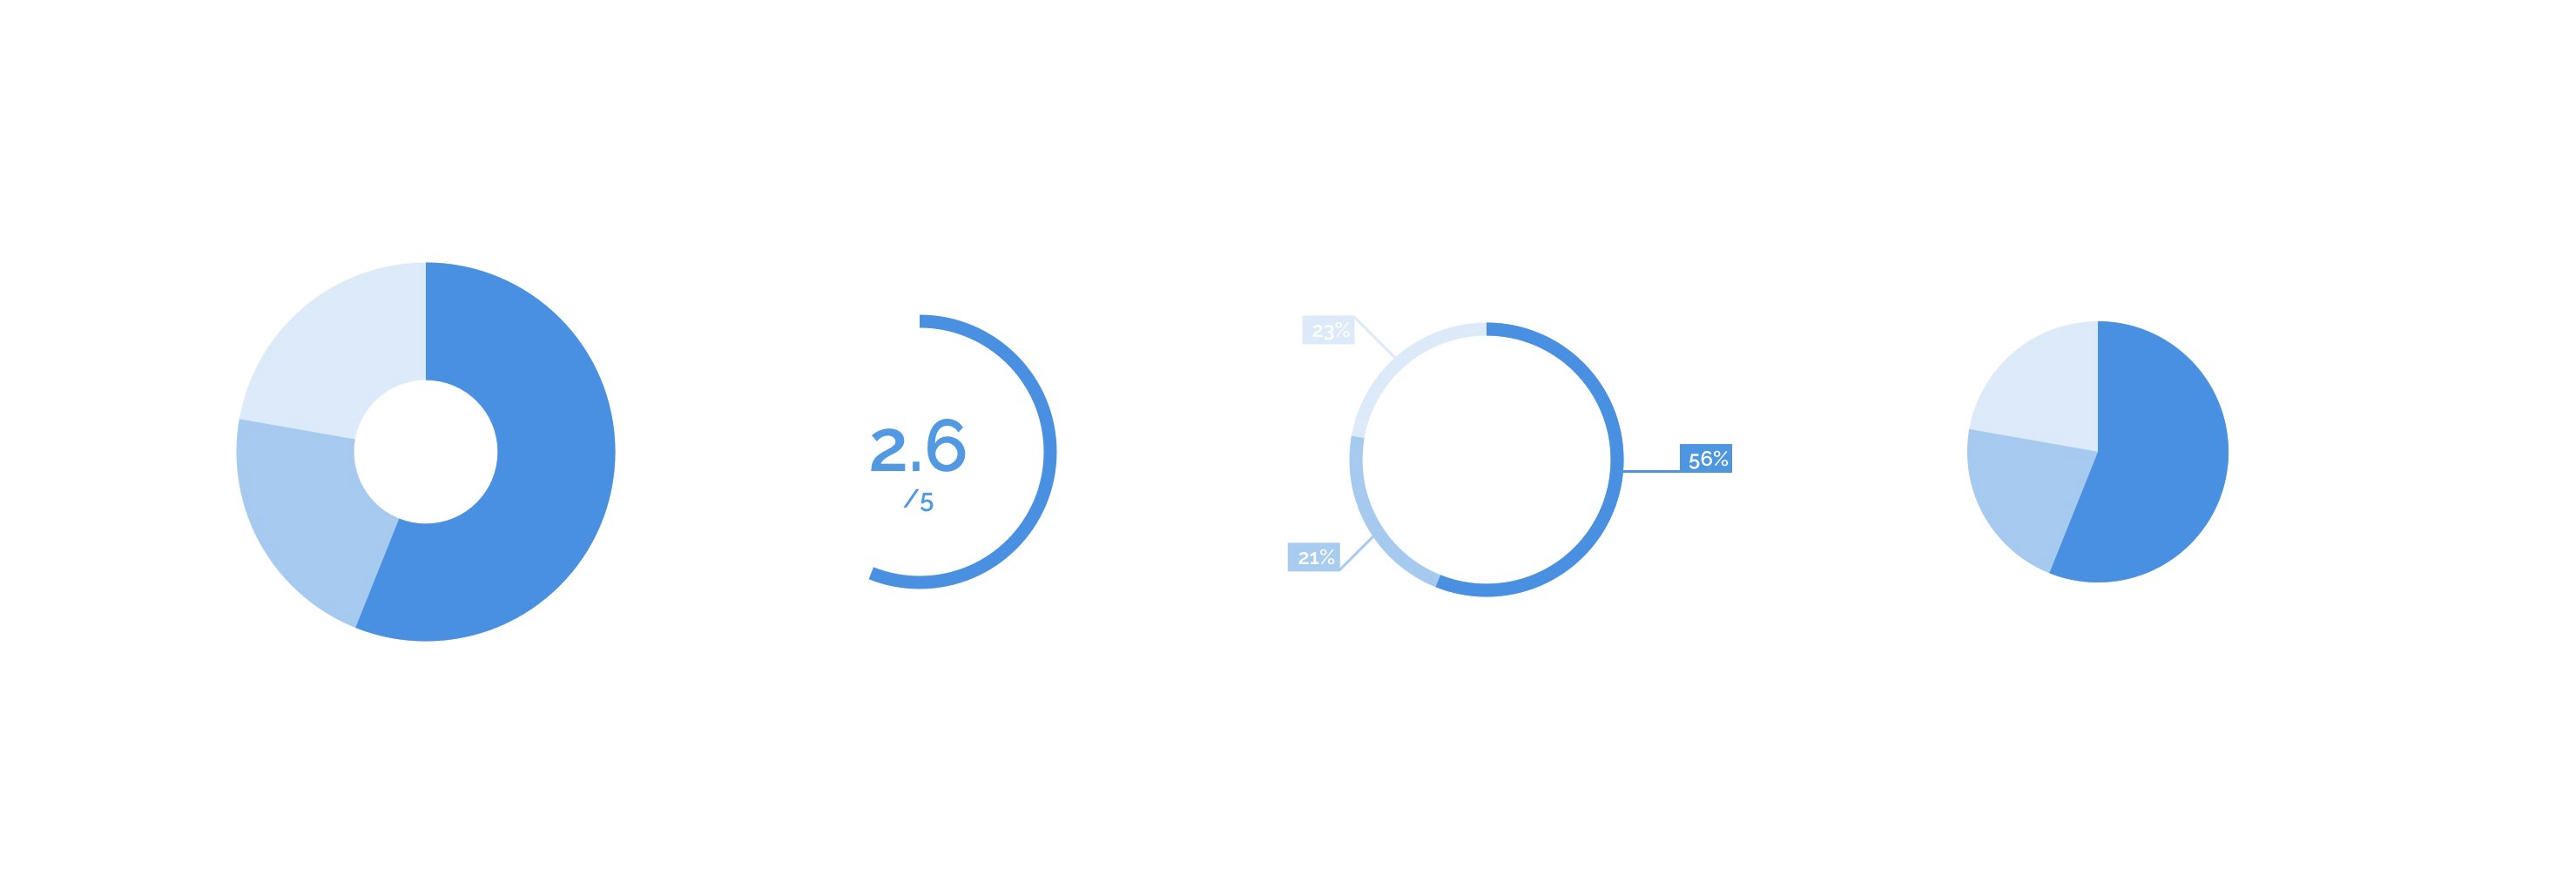 3 Easy Steps To Create Percentage Circles And Pie Charts